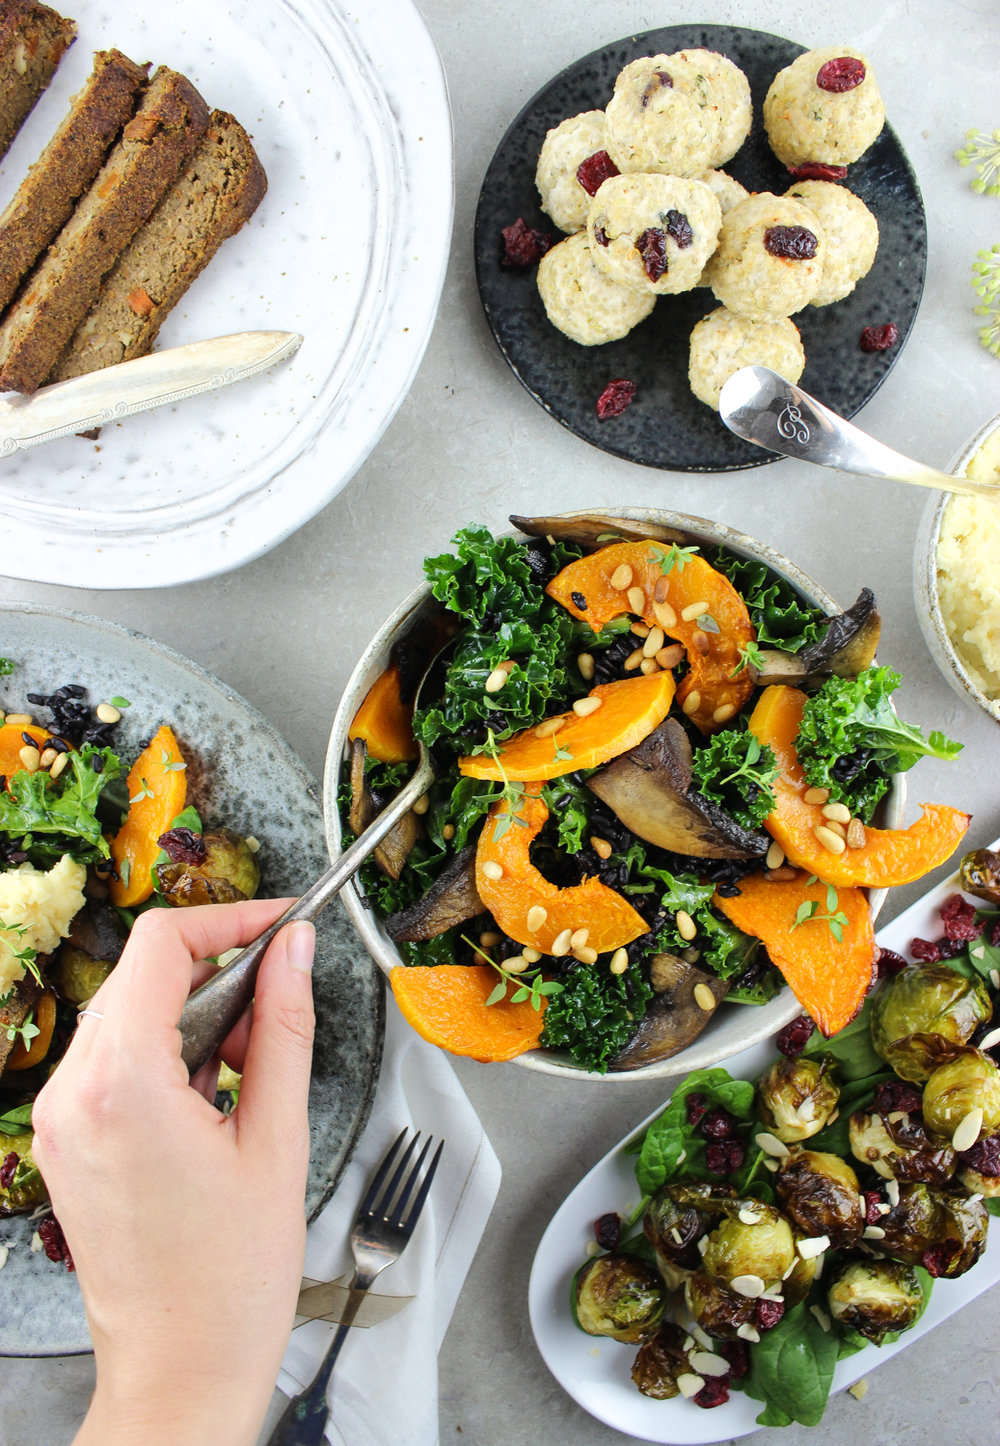 SEASONAL SALADS! SAGE INFUSED MUSHROOM + KALE SALAD